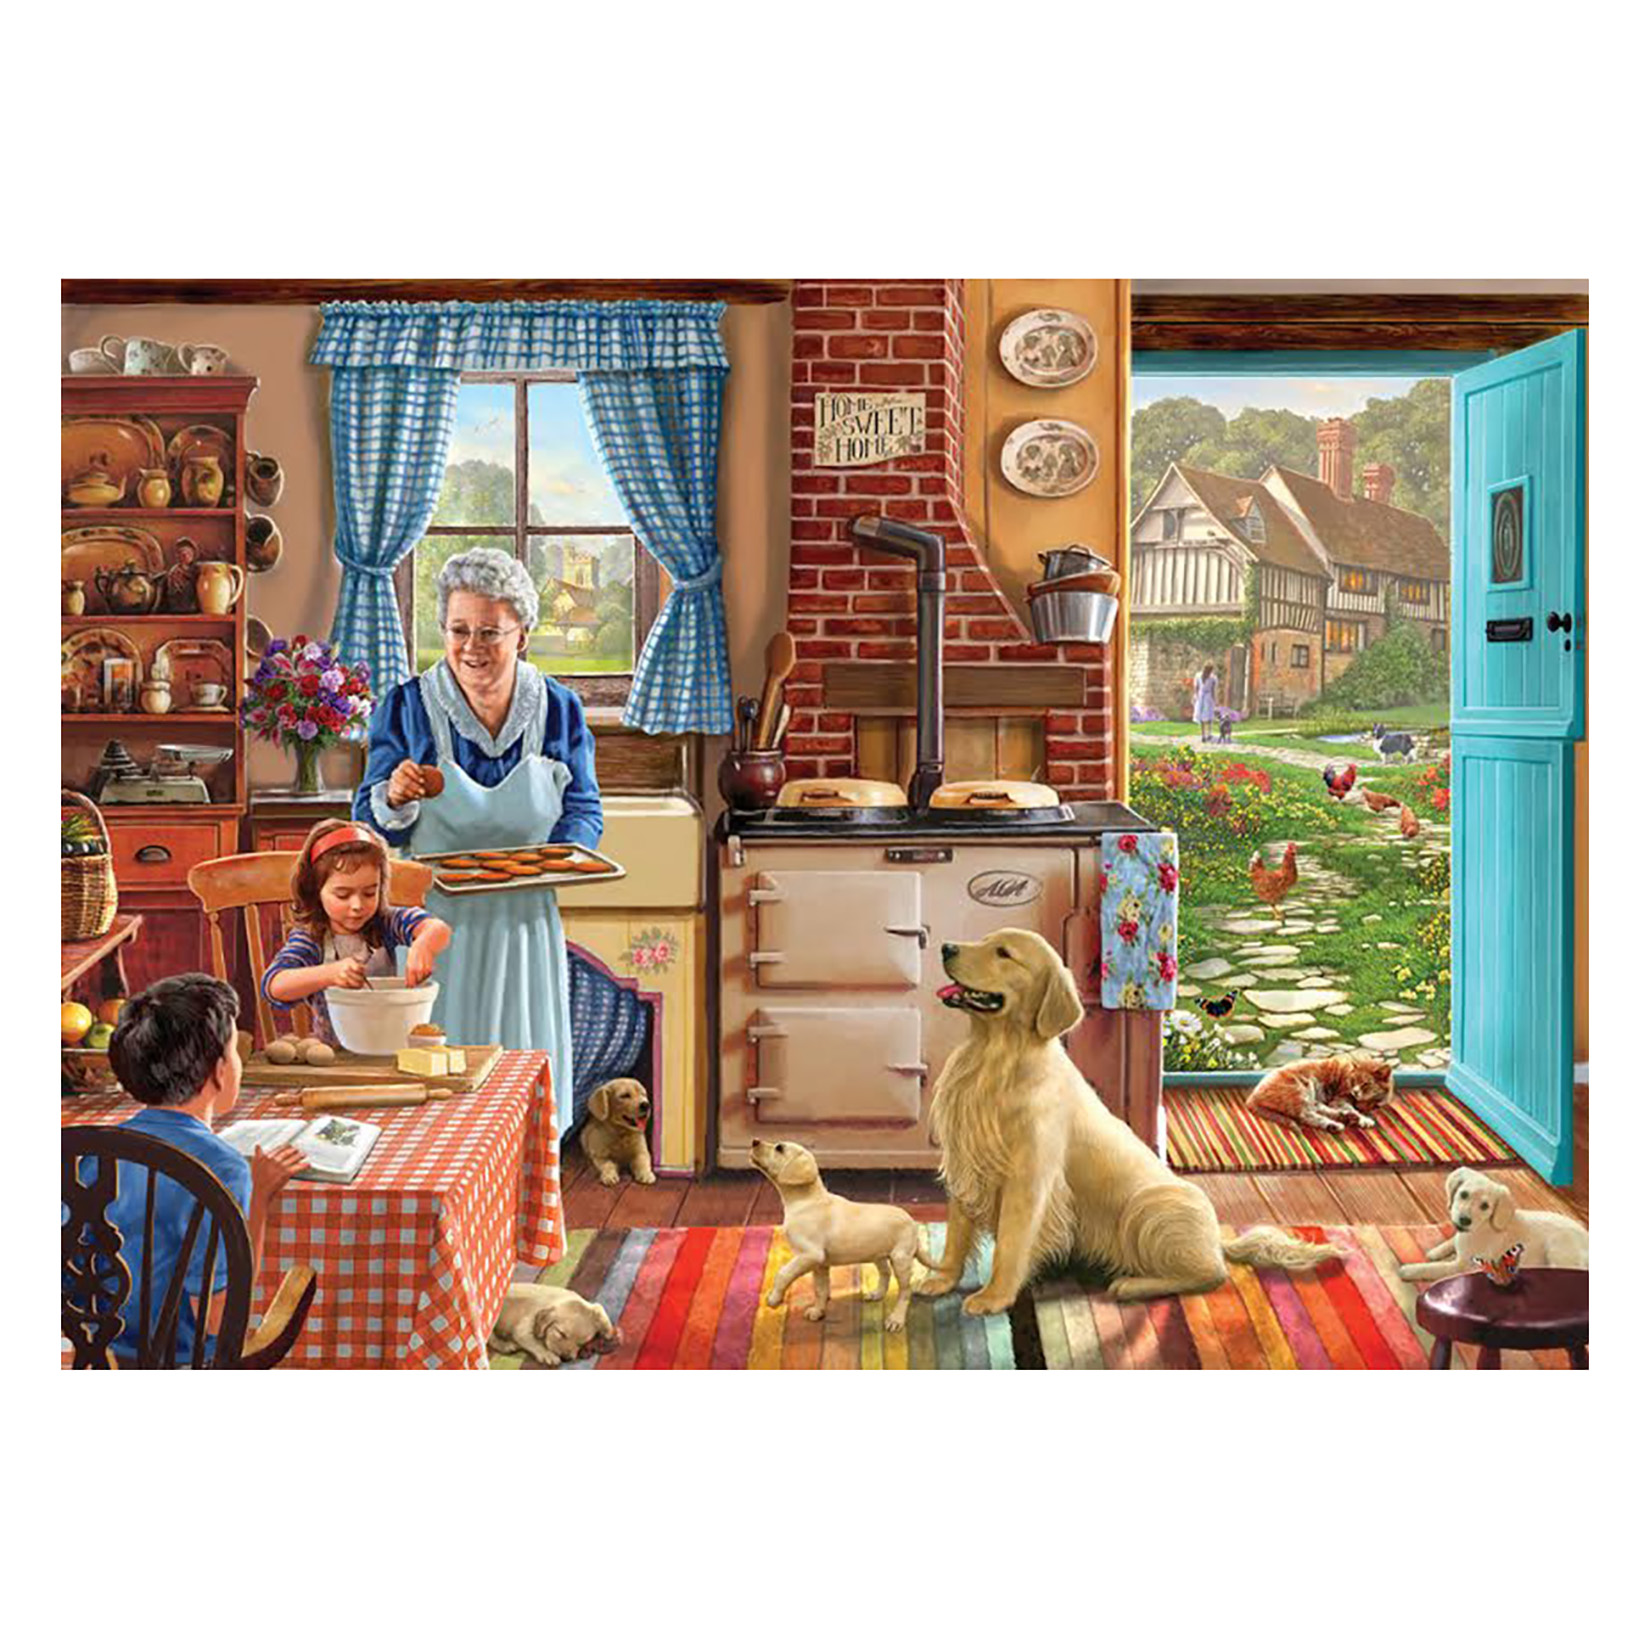 White Mountain Puzzles Home Sweet Home 1000 Piece Jigsaw Puzzle by White Mountain Puzzles